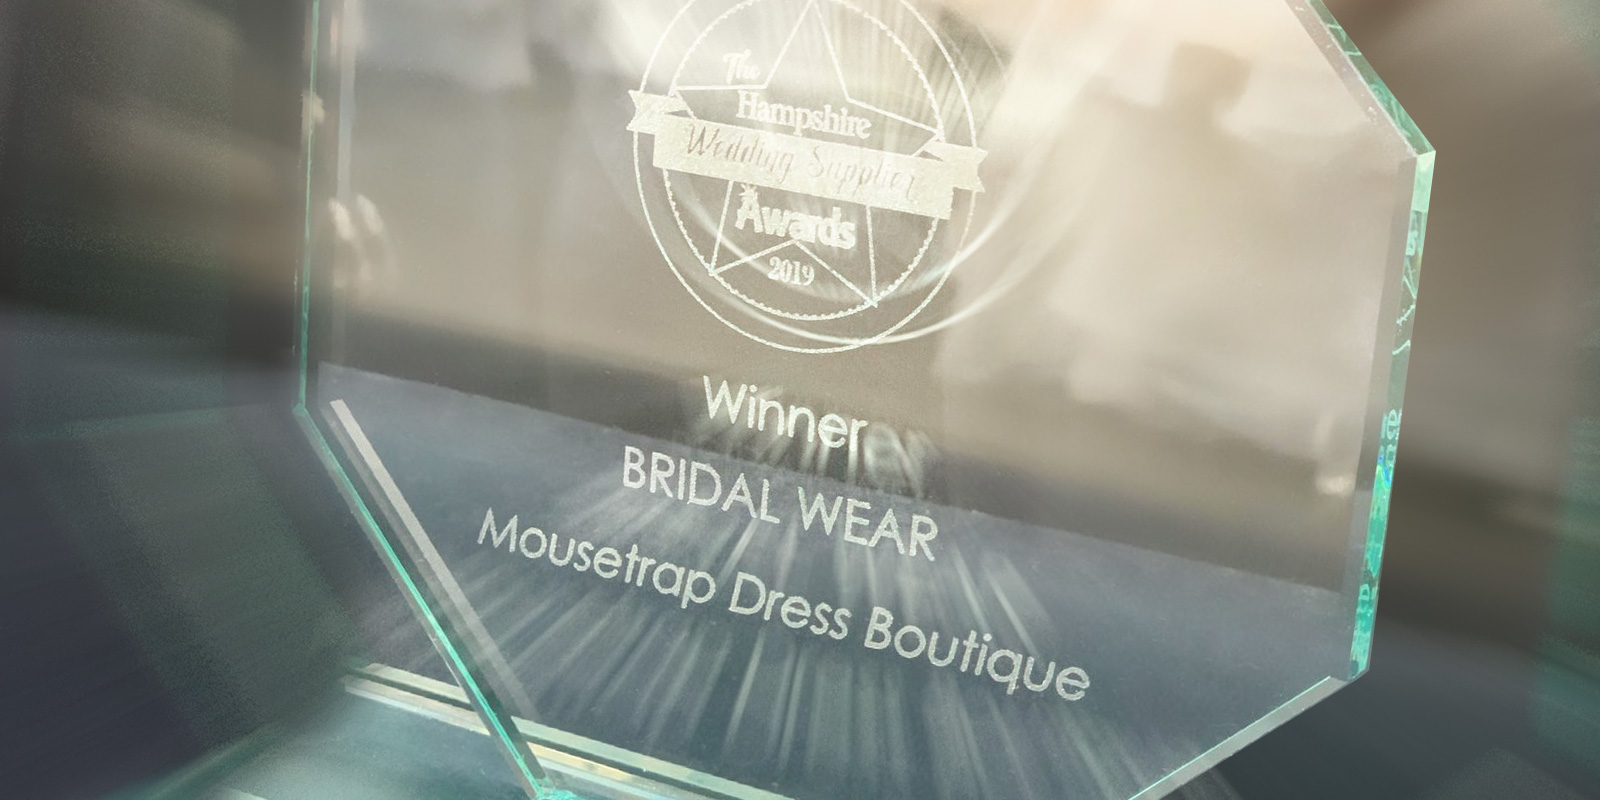 Hampshire Wedding Supplier Best in Bridalwear Winner 2019 & TWIA Best in Bridalwear Winner 2020